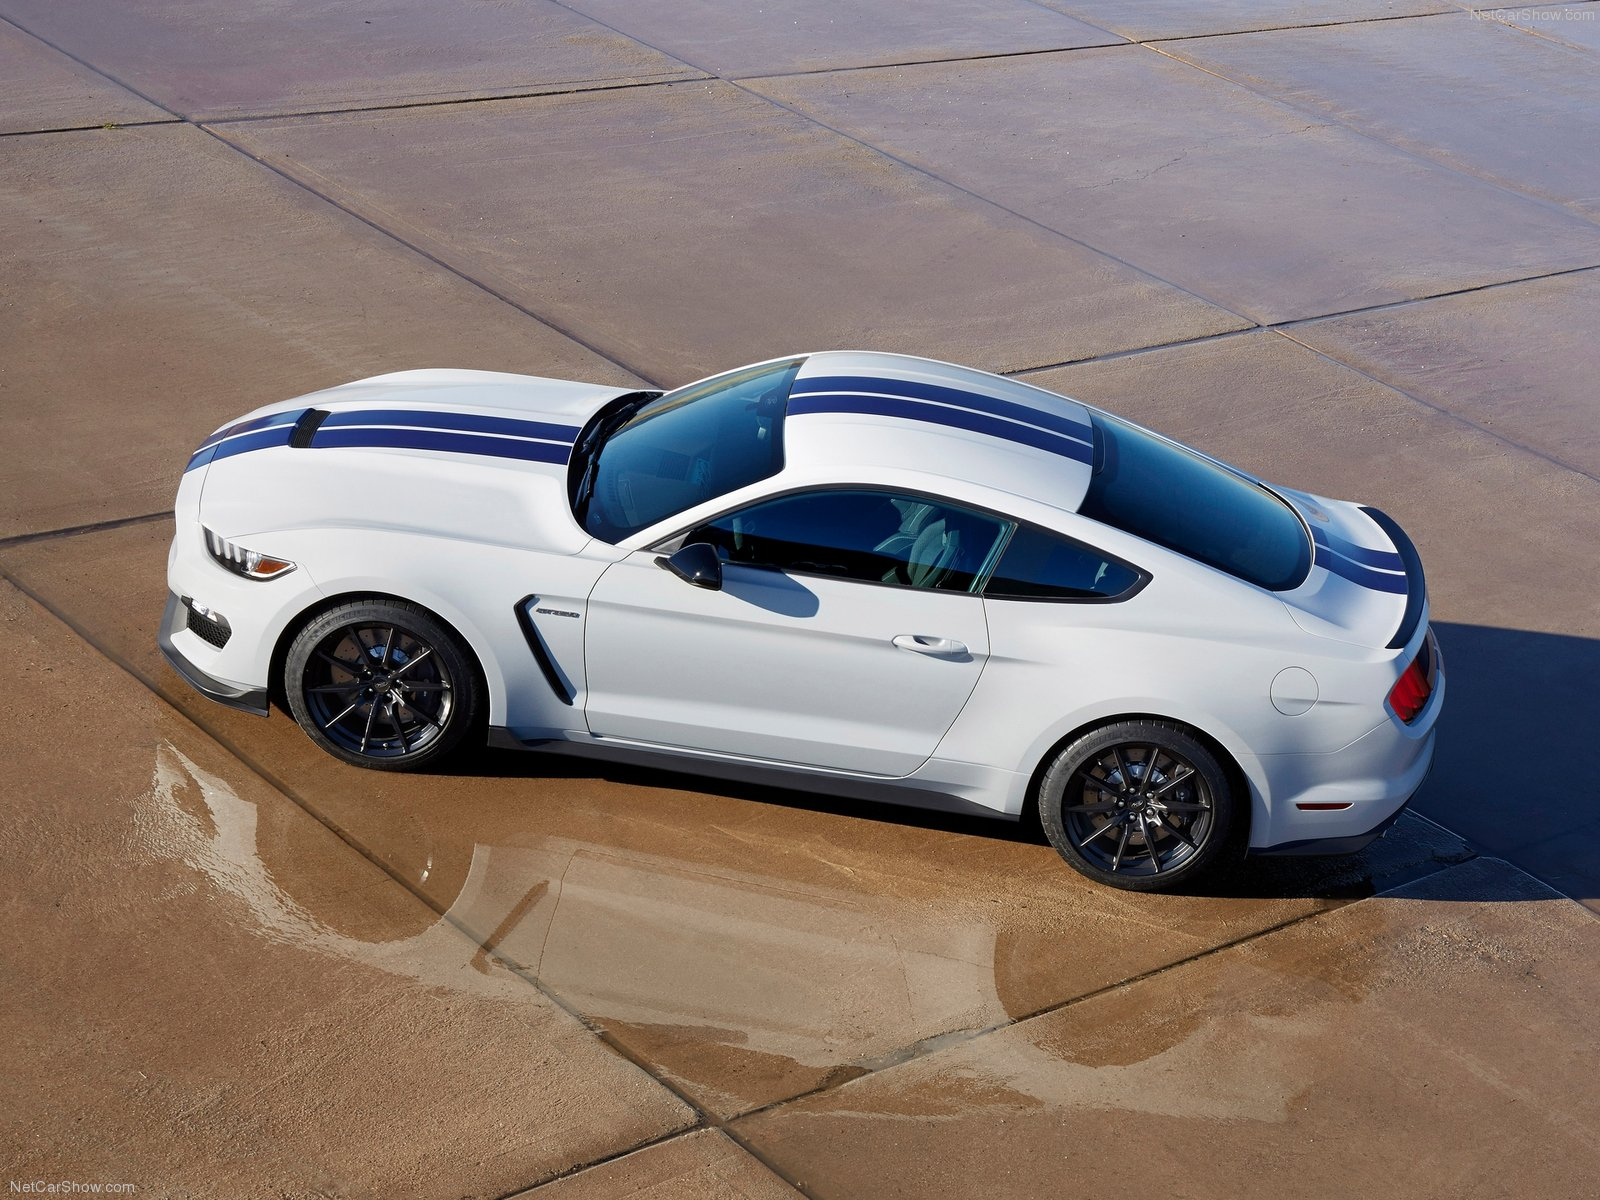 Ford-Mustang_Shelby_GT350_2016_1600x1200_wallpaper_06